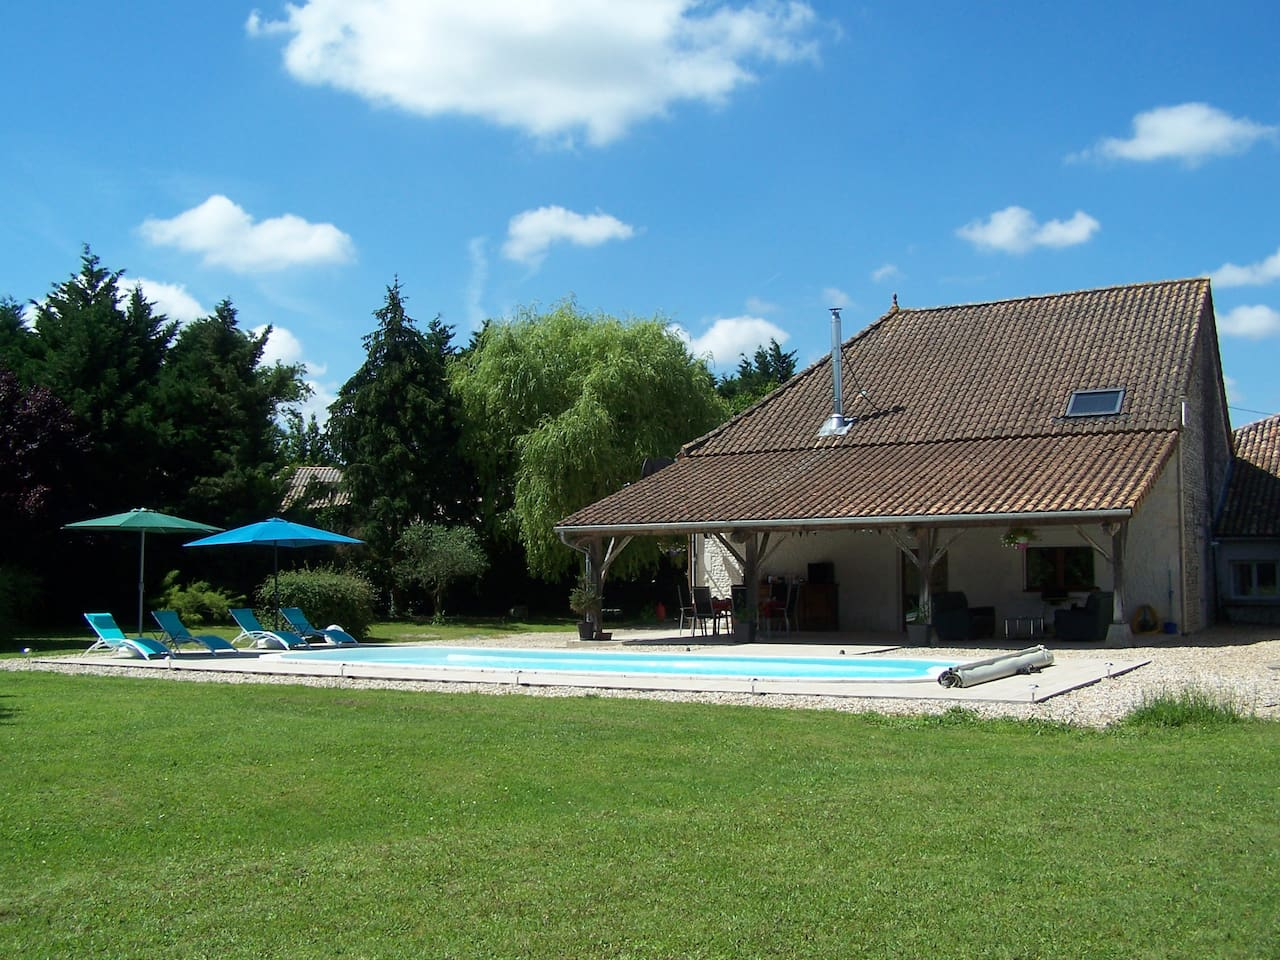 The heated pool and 2.5 acre (1 hectare) gardens